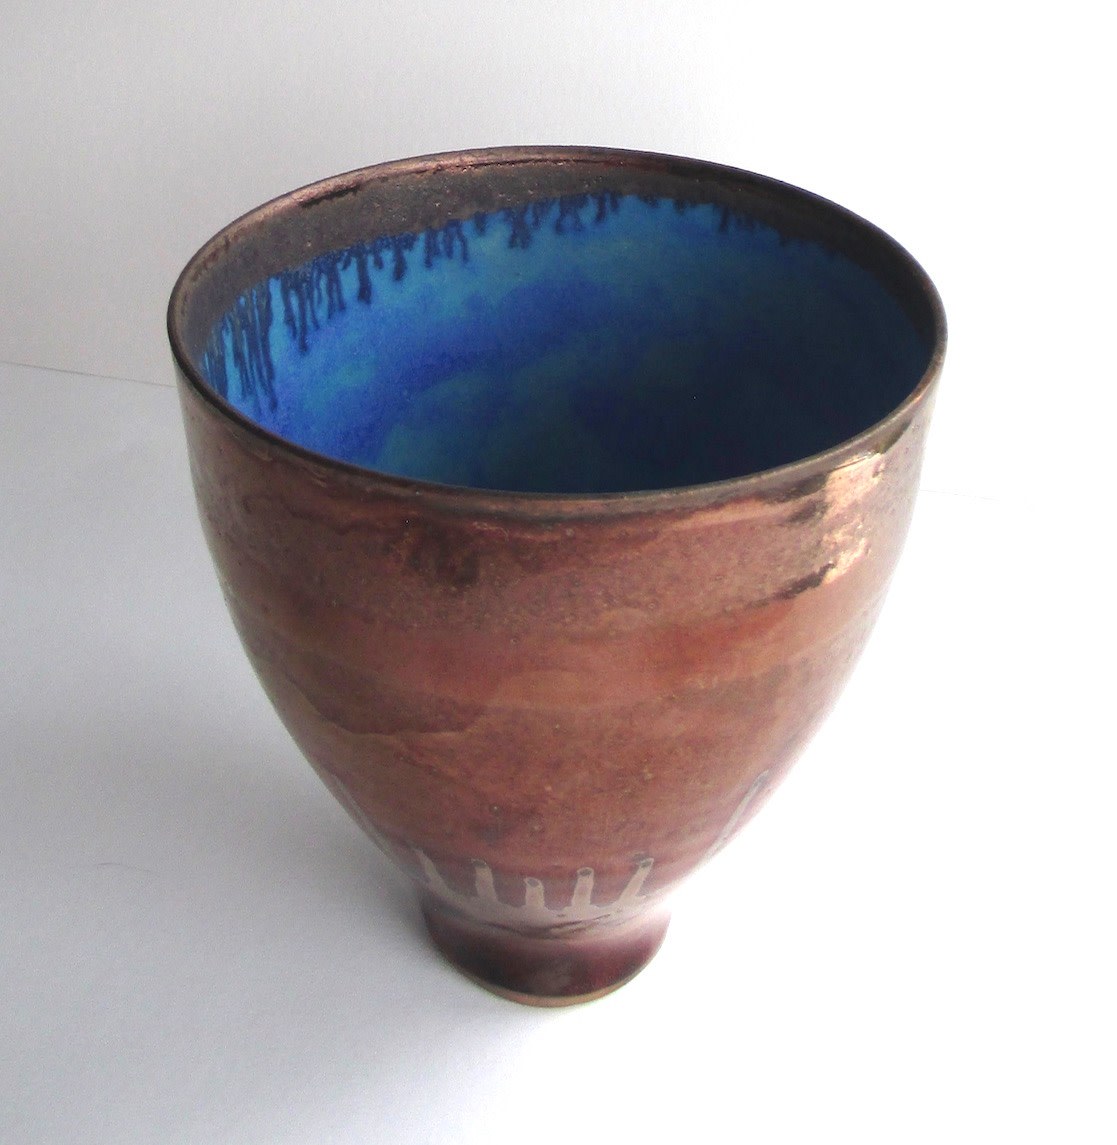 "<span class=""link fancybox-details-link""><a href=""/artists/44-sarah-perry/works/6976-sarah-perry-tall-copper-lustred-blue-pool-bowl-2020/"">View Detail Page</a></span><div class=""artist""><strong>Sarah Perry</strong></div> <div class=""title""><em>Tall Copper lustred Blue Pool Bowl</em>, 2020</div> <div class=""signed_and_dated"">labelled on the bottom</div> <div class=""medium"">Stoneware</div> <div class=""dimensions"">h. 15.5 x 15 cm </div><div class=""copyright_line"">Own Art: £ 23.10 x 10 Months, 0% APR</div>"